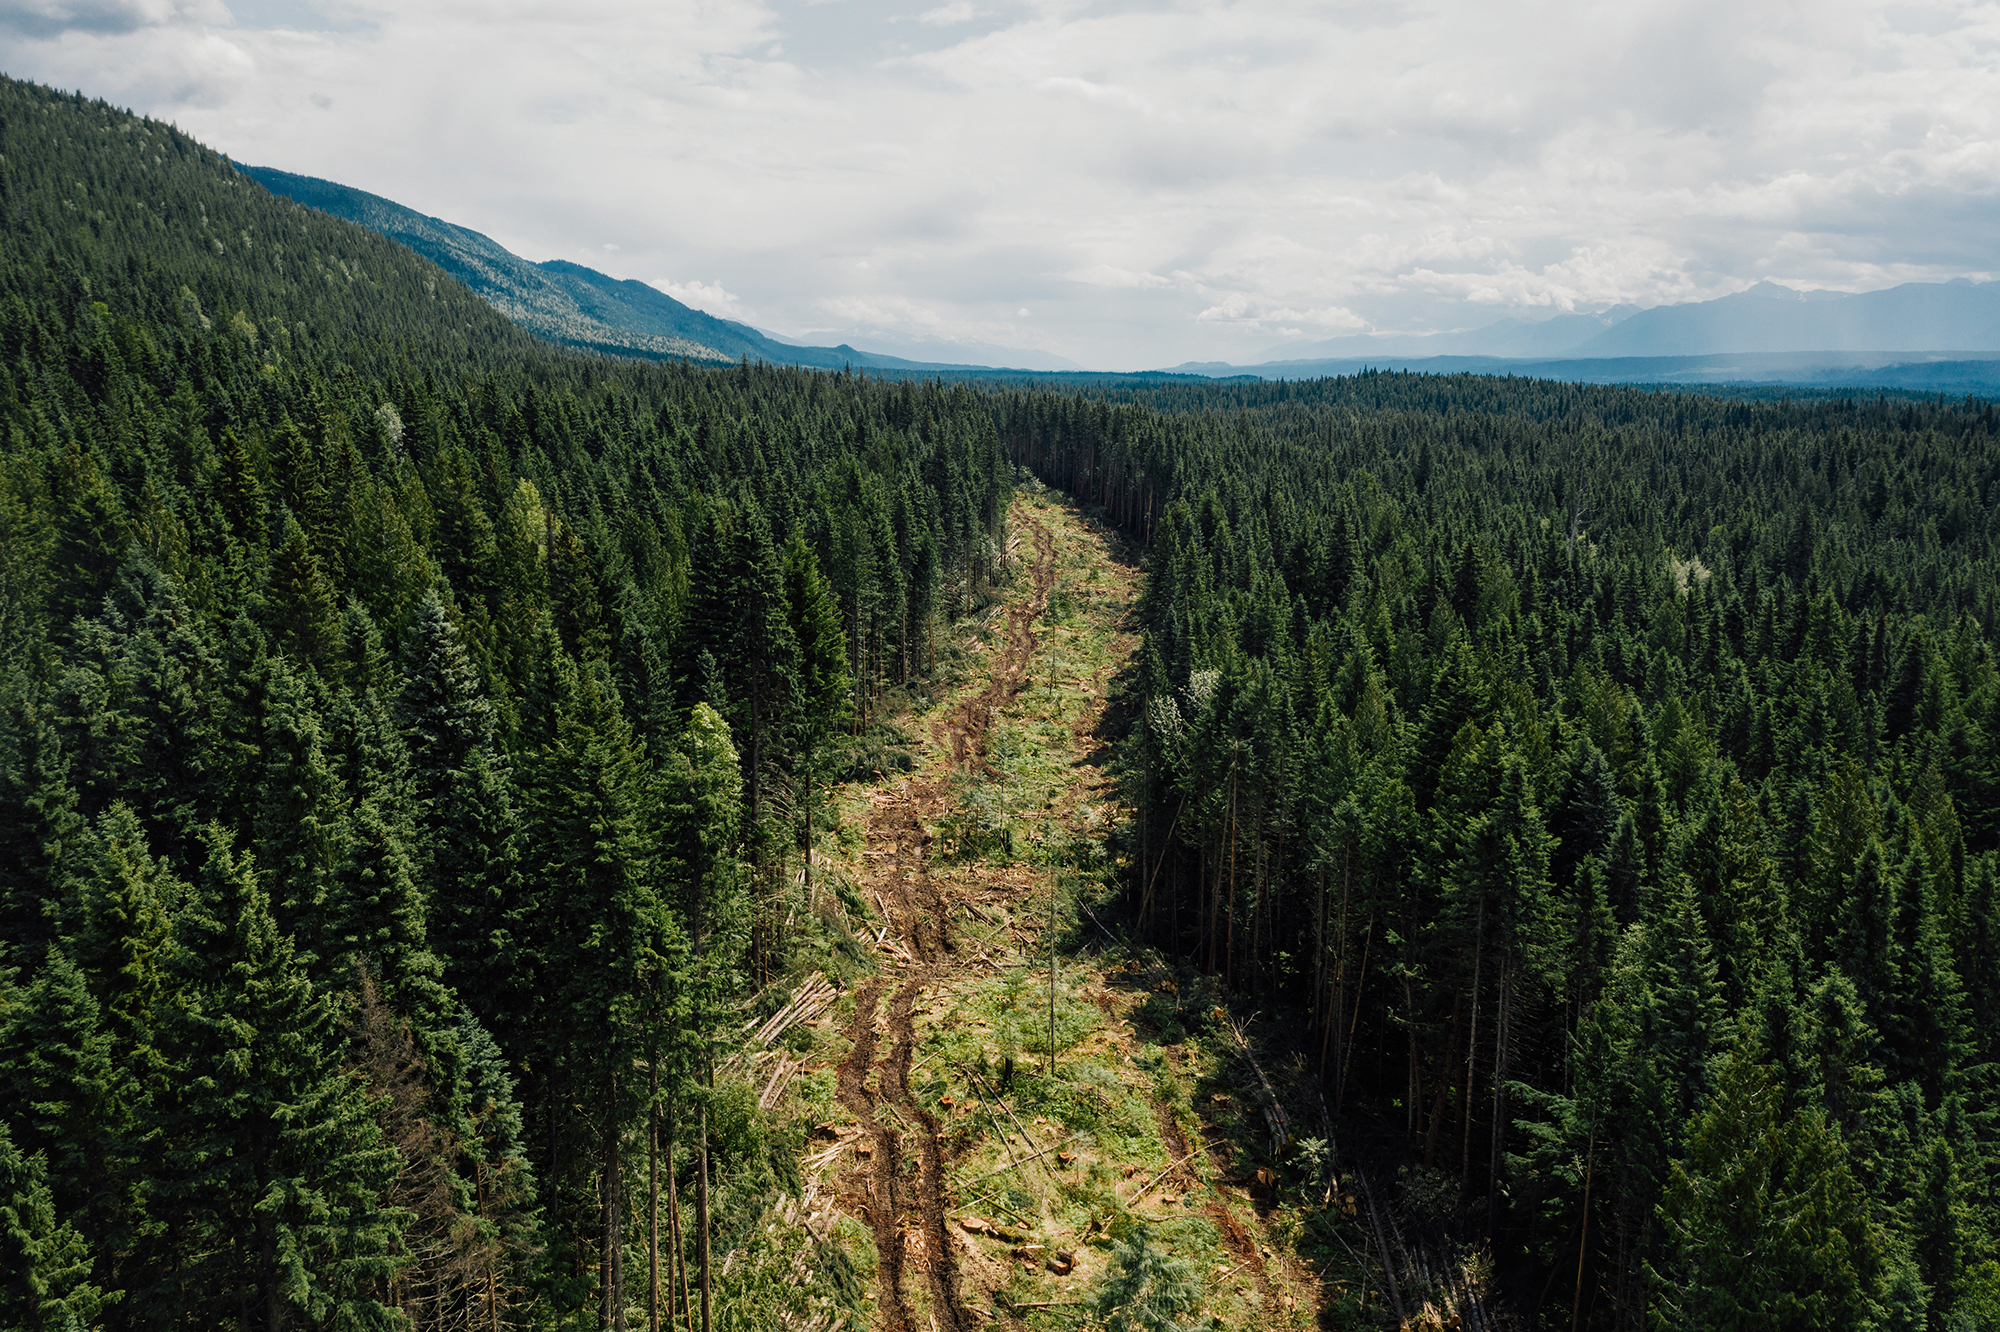 A new road being carved into the old-growth inland temperate rainforest east of Prince George, B.C., in preparation for logging.